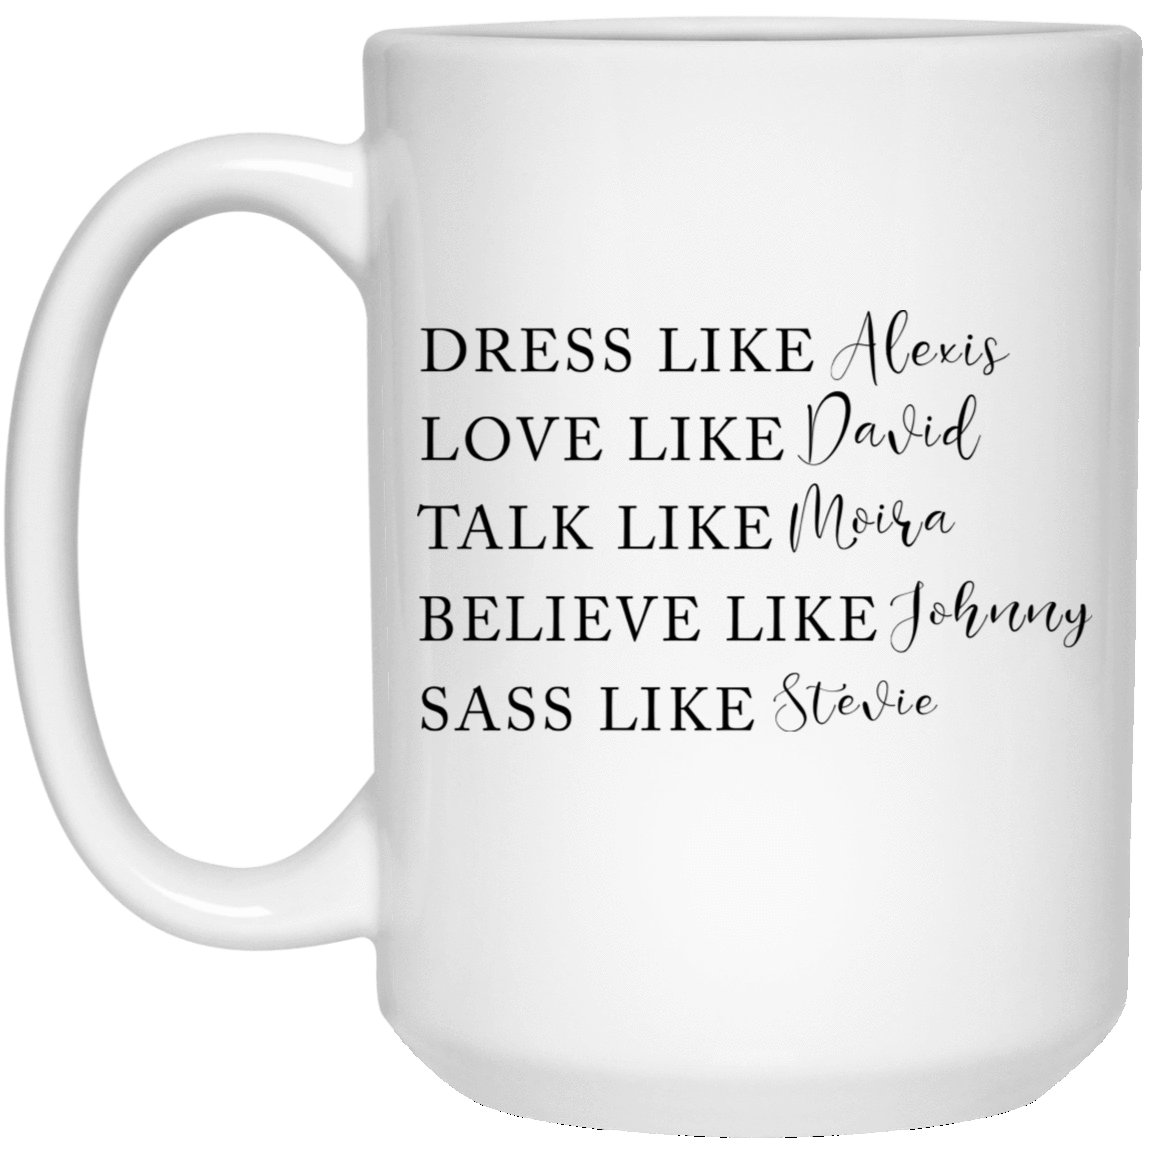 Dress Like Alexis Love Like David Talk Like Moira Believe Like Johnny Sass Like Stevie Mug 1032-9816-88282884-47456 - Tee Ript